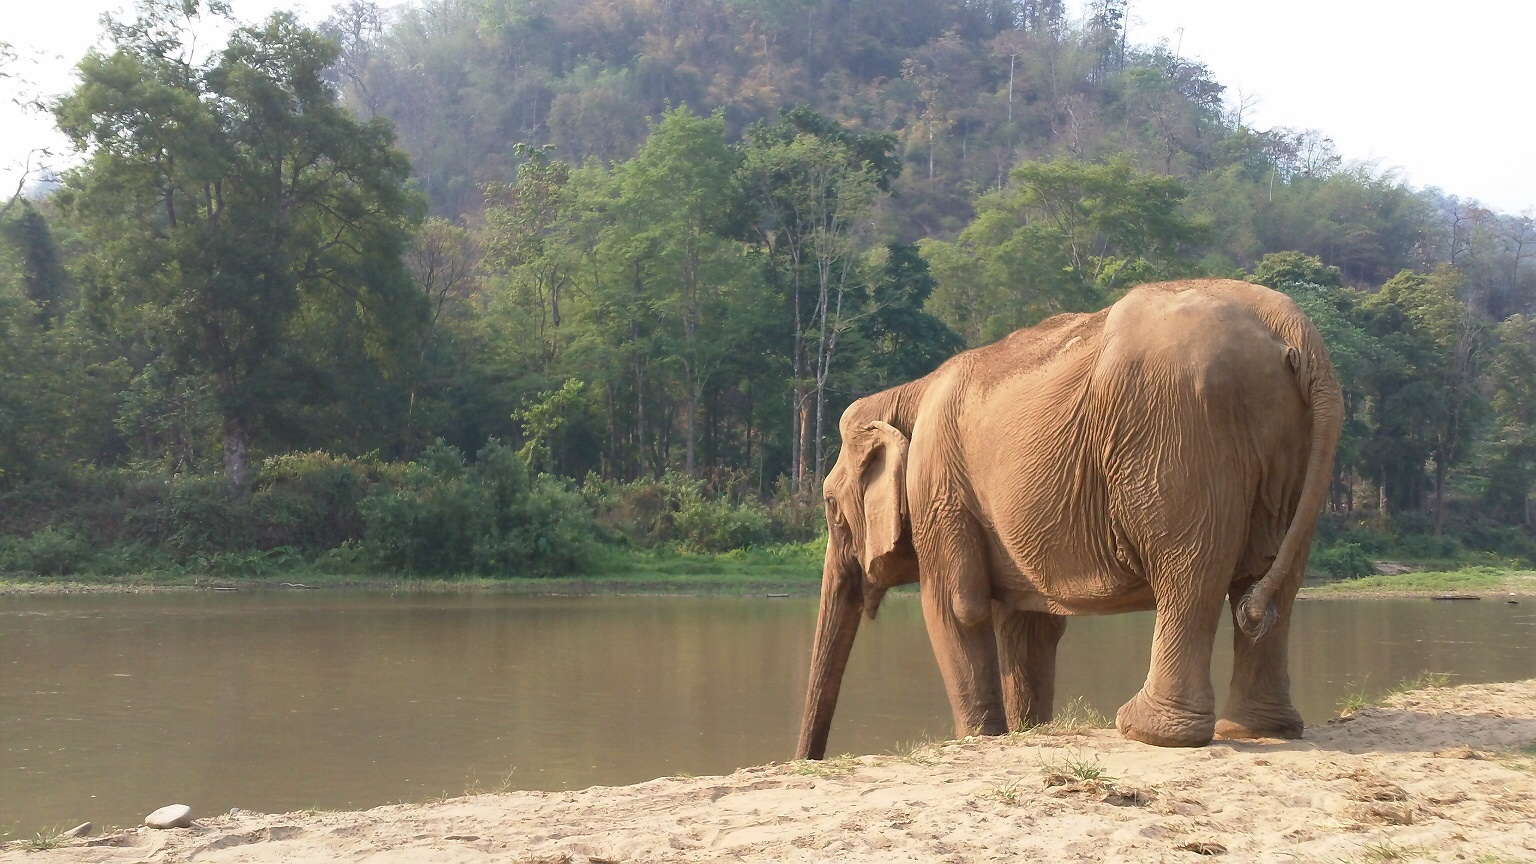 Tony looked after Juranee, another ENP elephant, for 3 months as a volunteer.  She is blind.  Picture kindly supplied by Elephant Haven